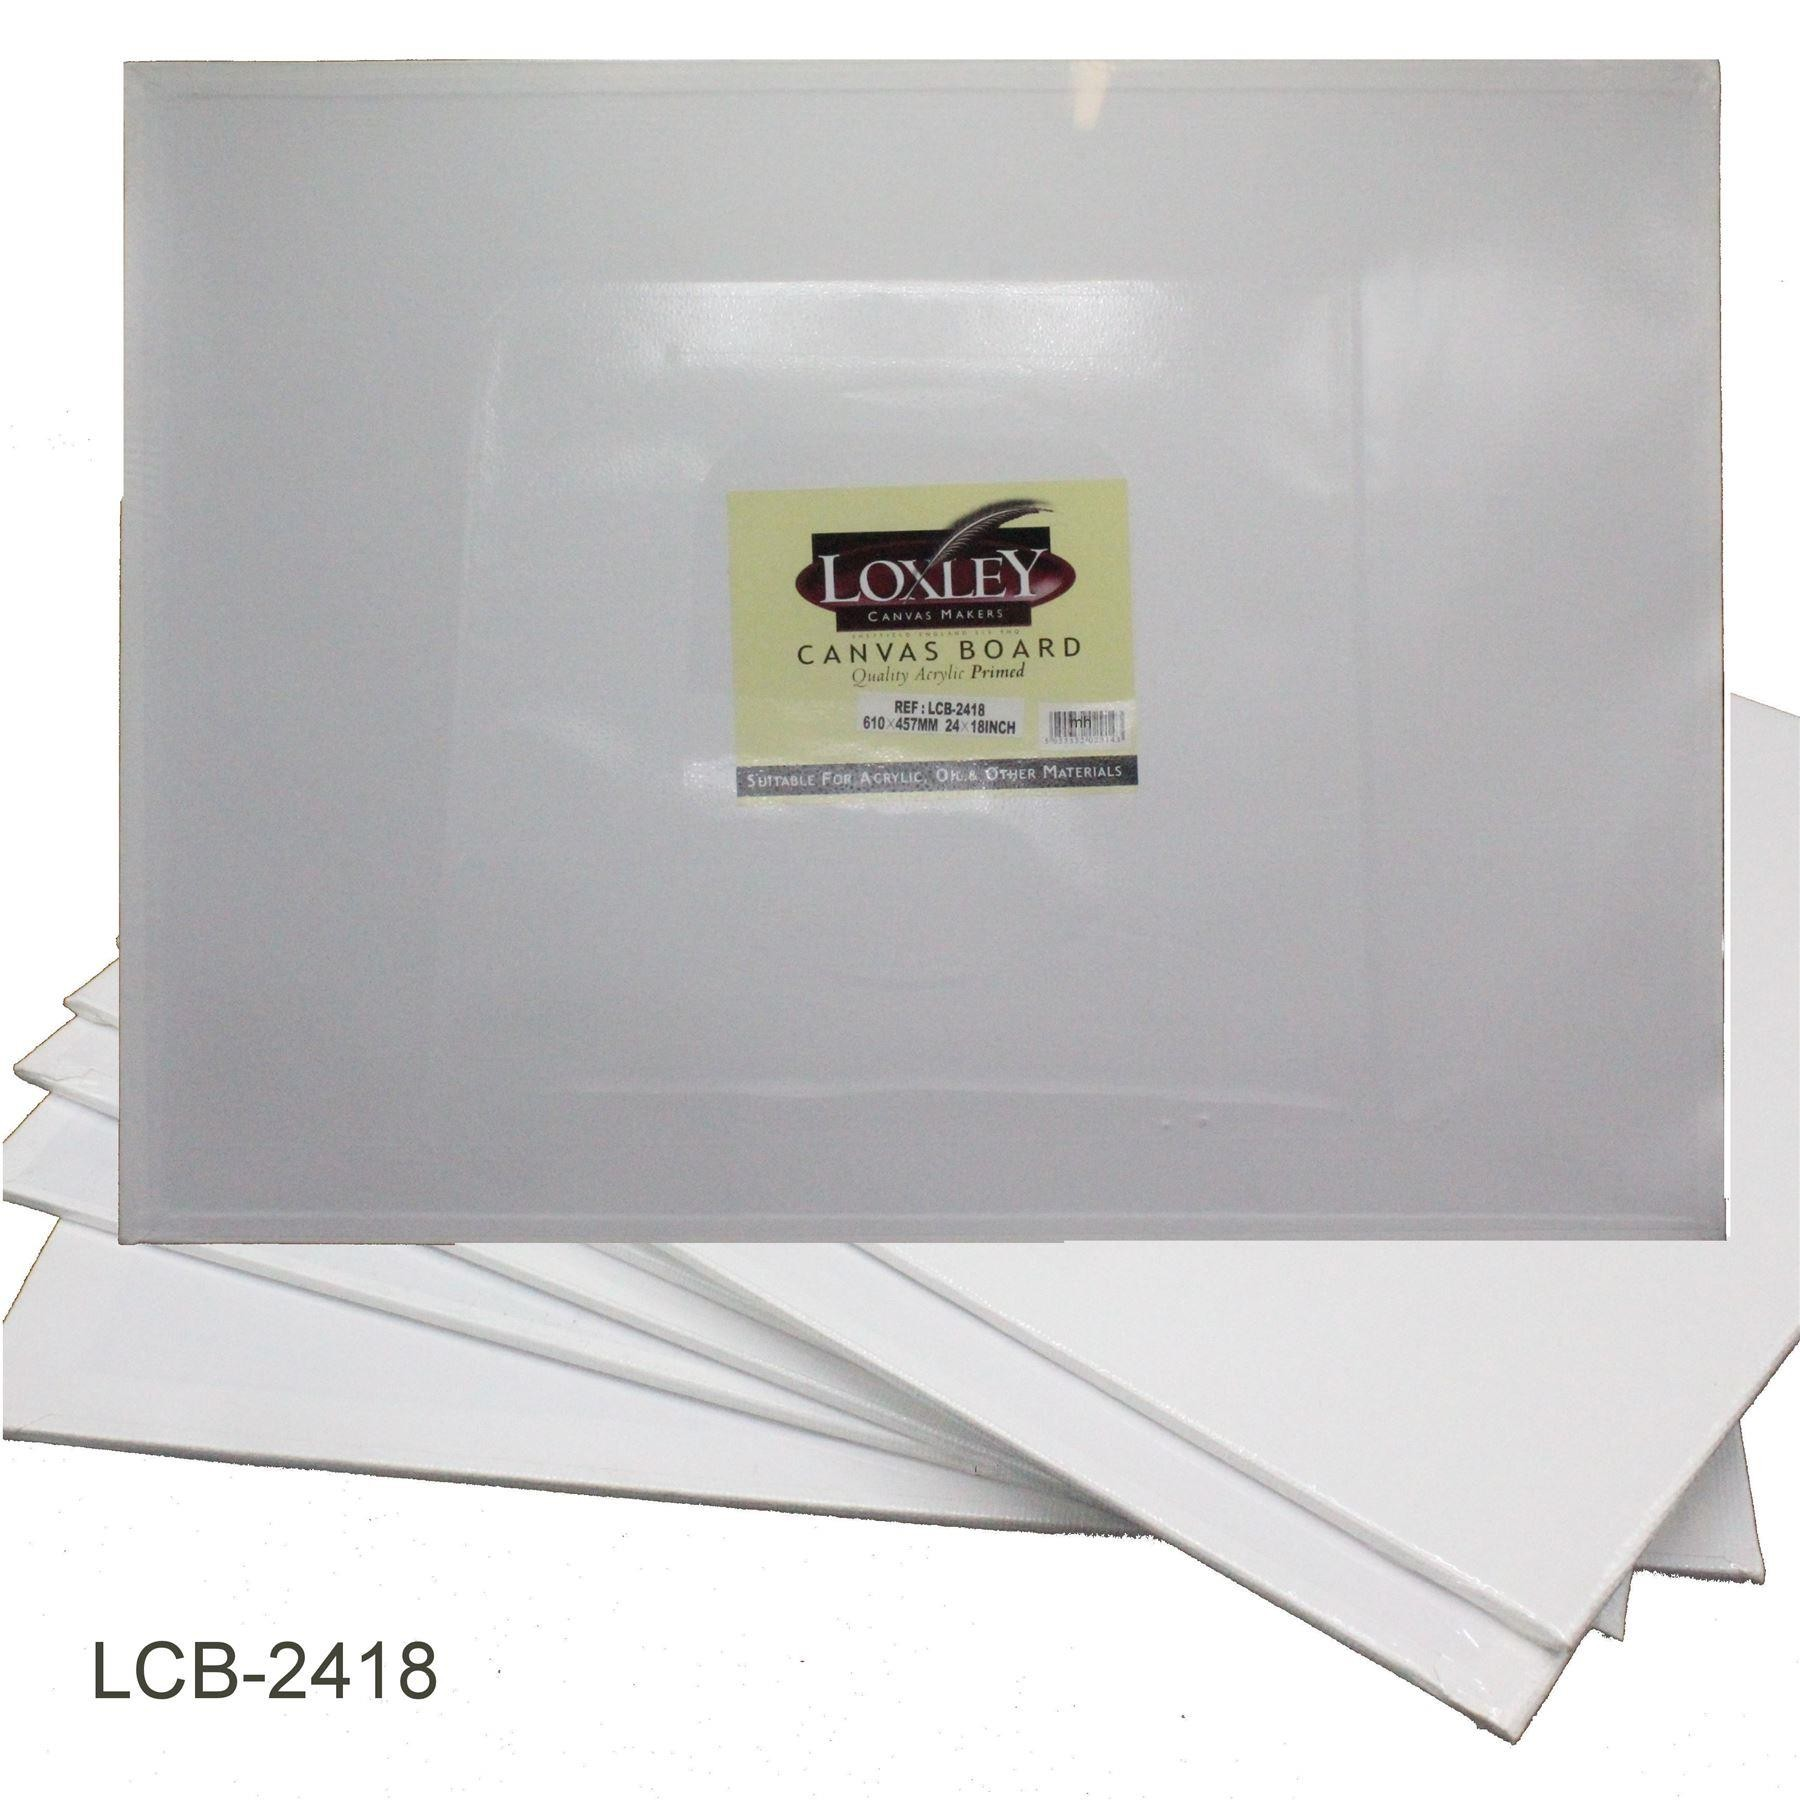 Double Primed Acrylic canvas board from Loxley - 24 x 18""